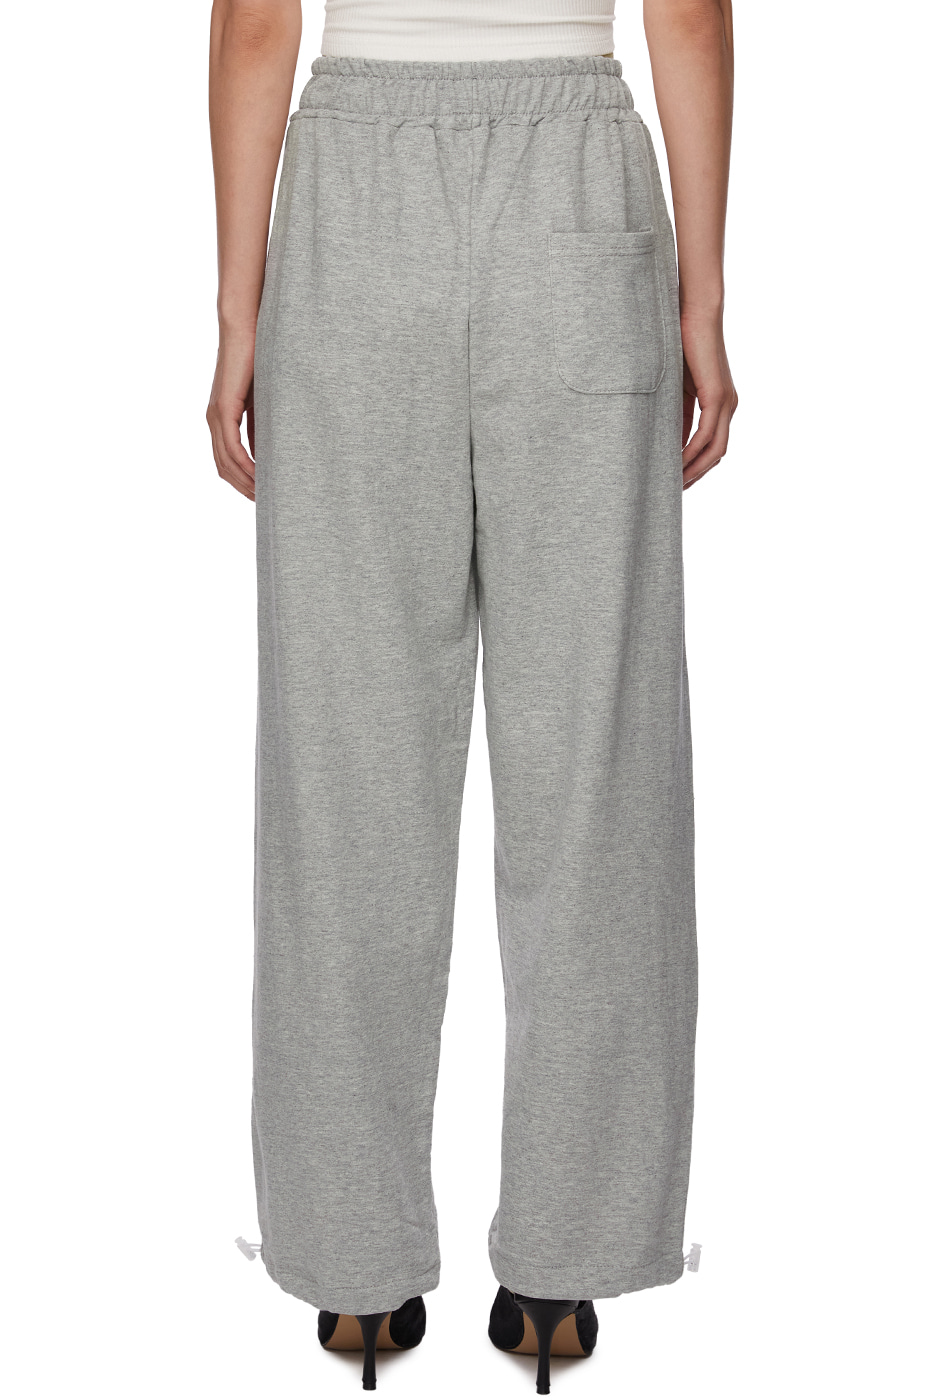 Have Me Two-Way Sweat Jogger Pants